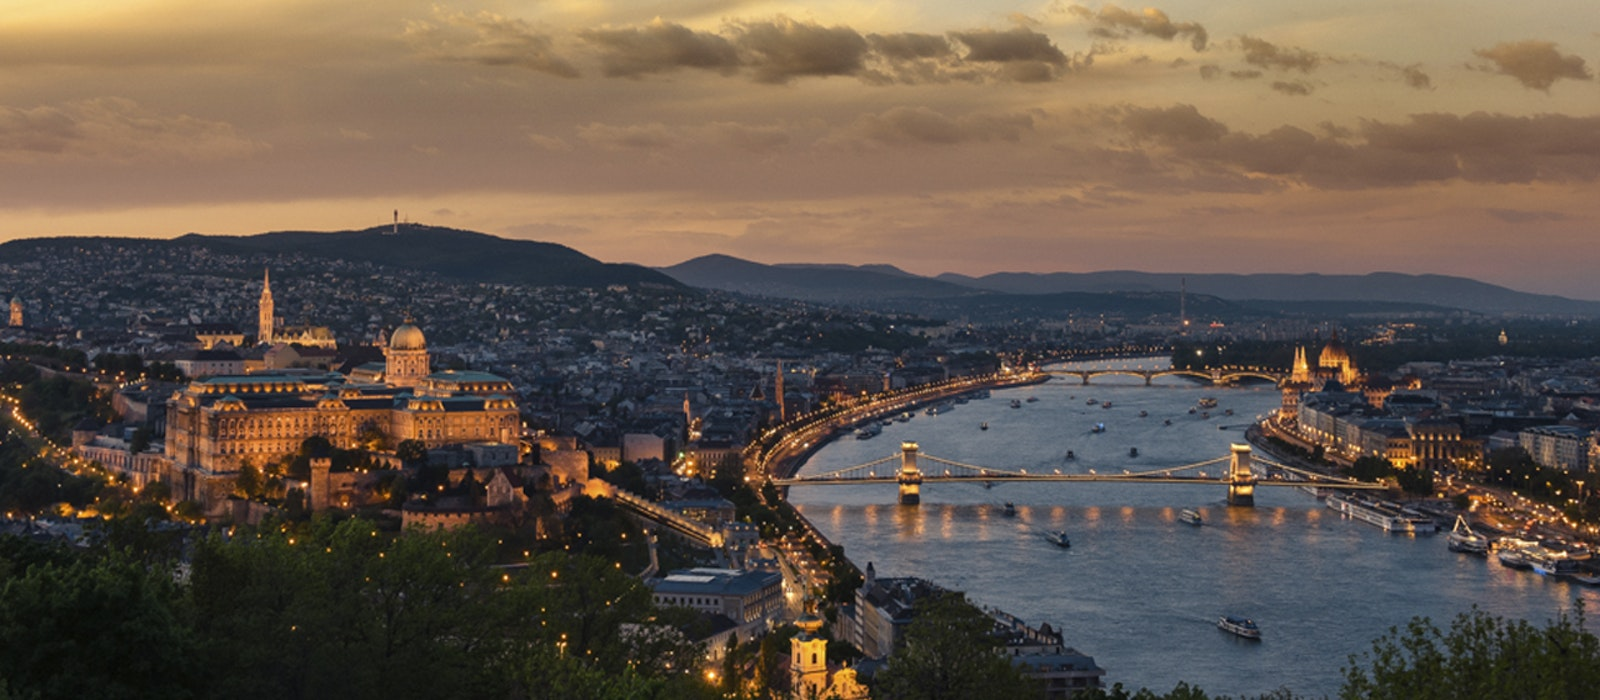 From 'ruin bars' to magnificent castles, Budapest can surprise visitors with its breadth of experience.